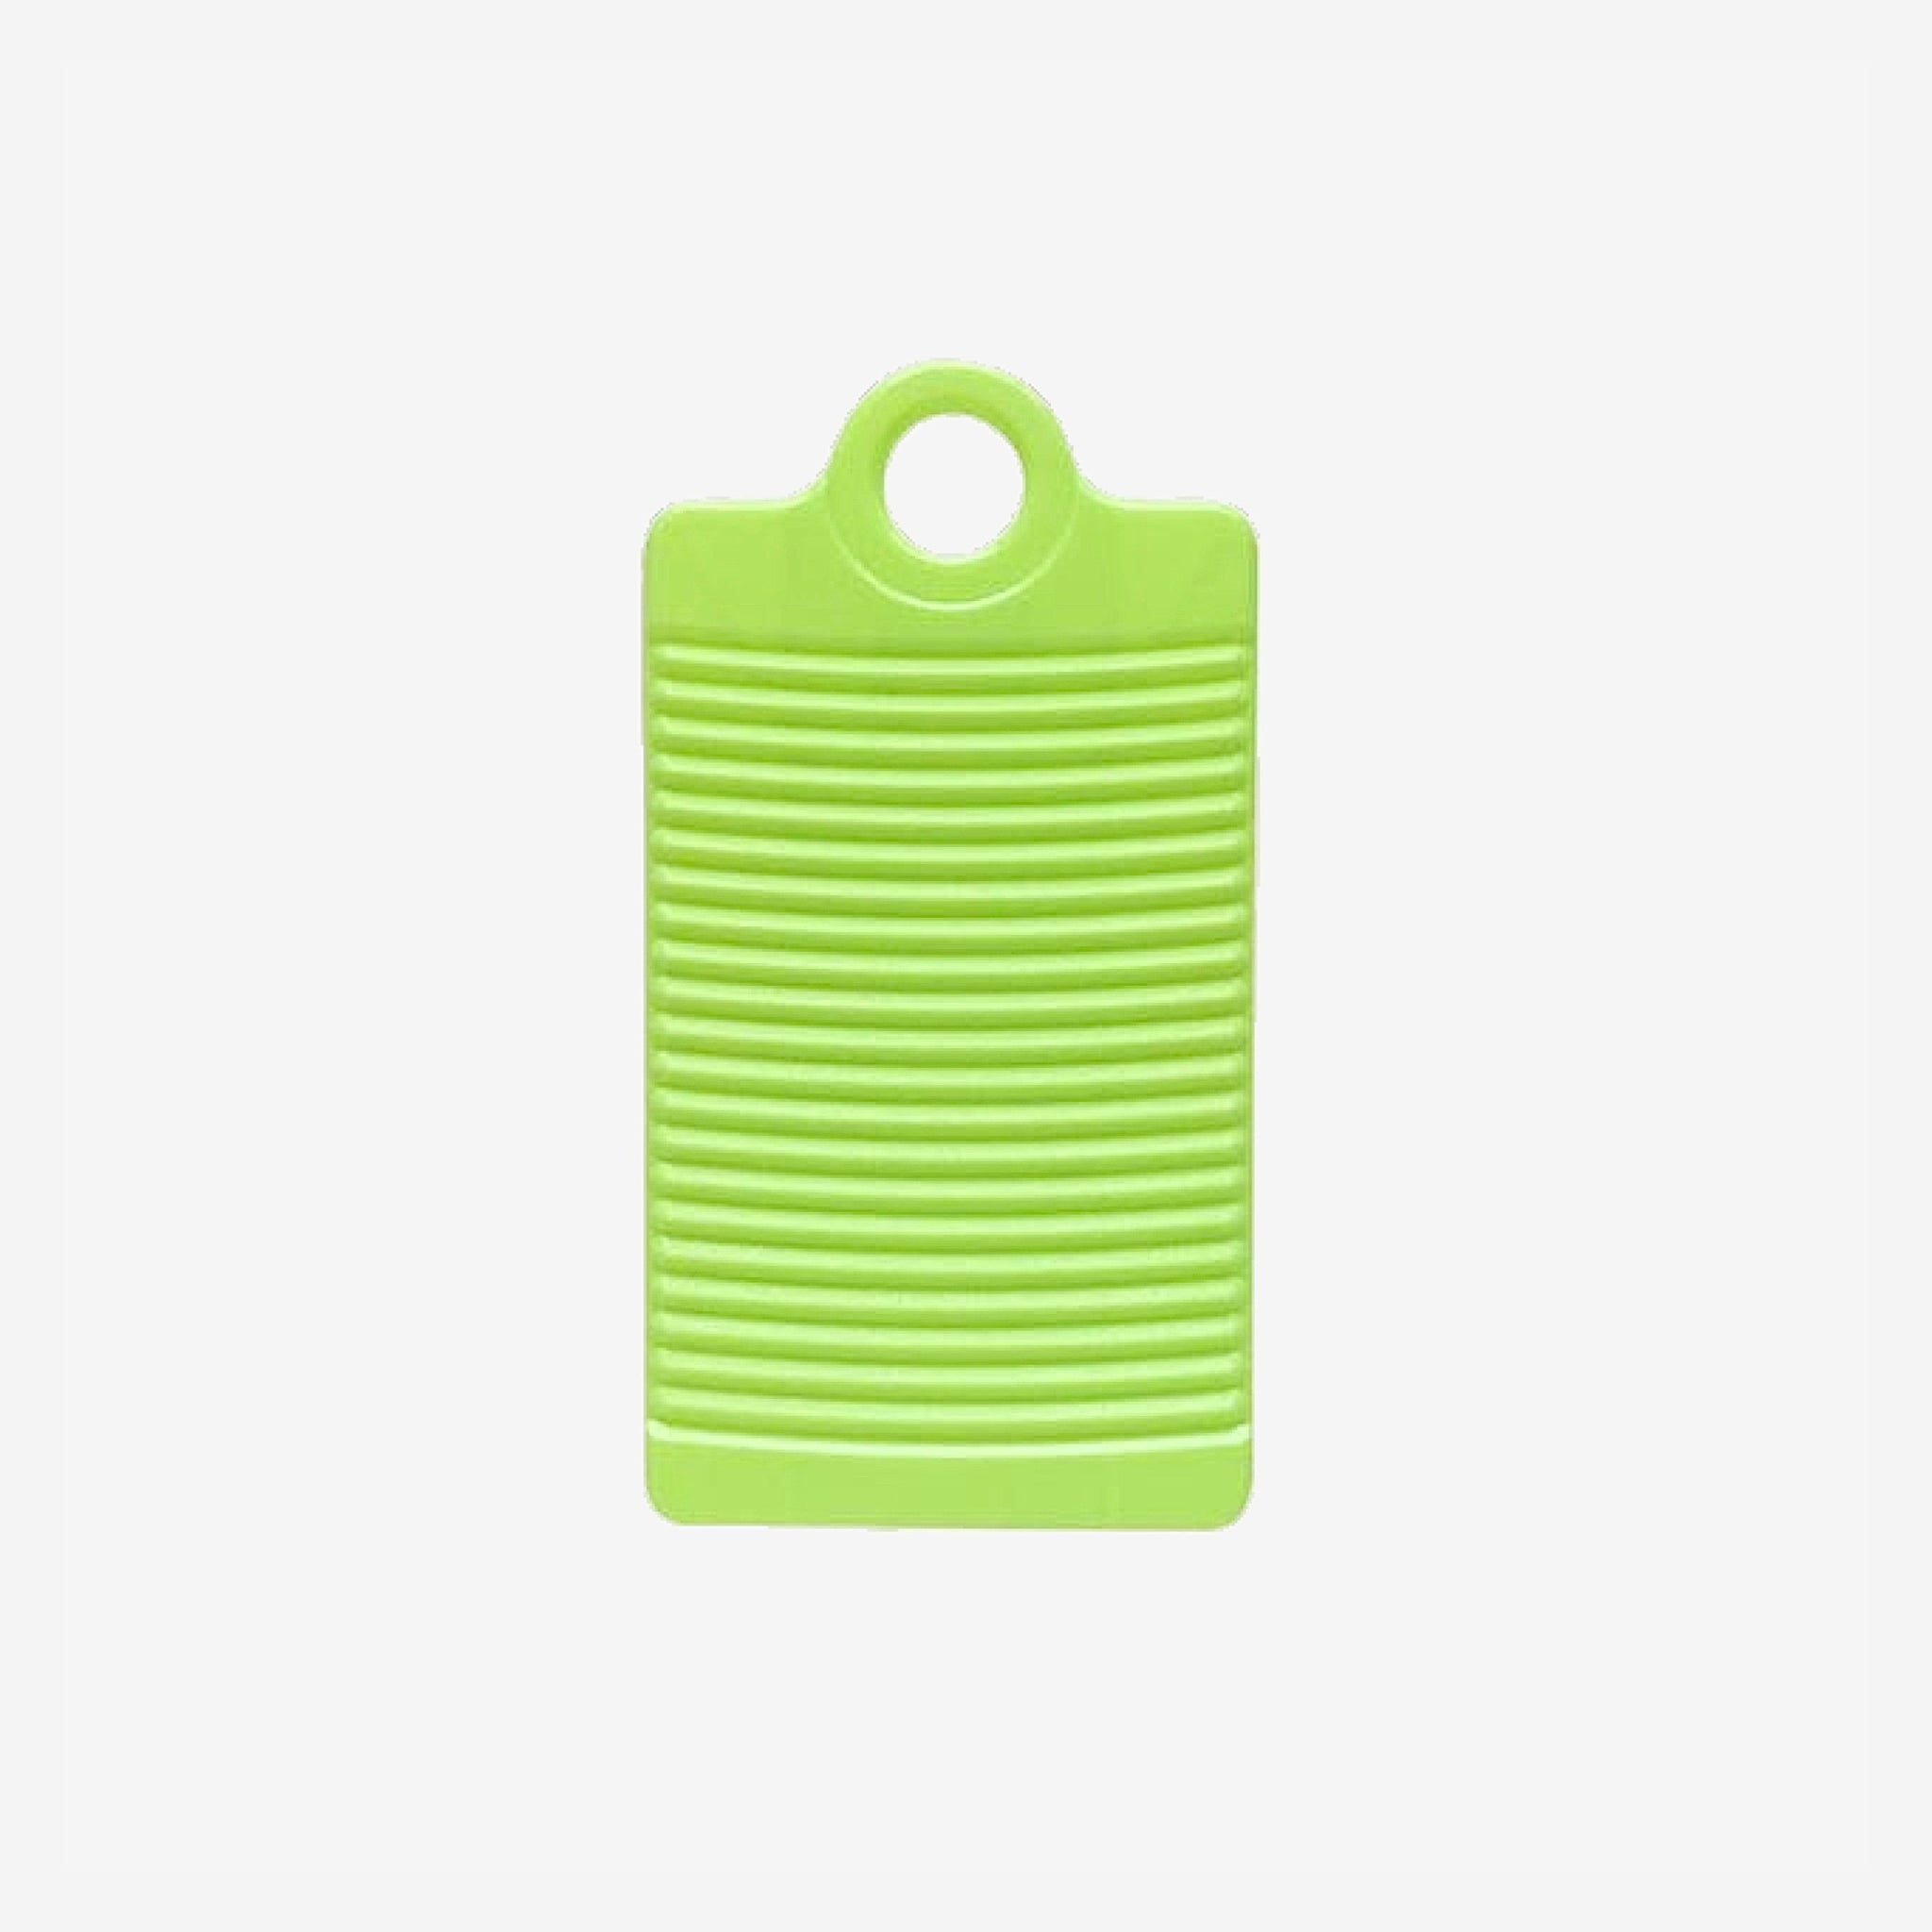 Anti slip Thick Mini Washboard Laundry Accessories Washing Board Clothes Cleaning Tools Green Anti slip Thick Mini Washboard Laundry Accessories Washing Board Clothes Cleaning Tools Trend